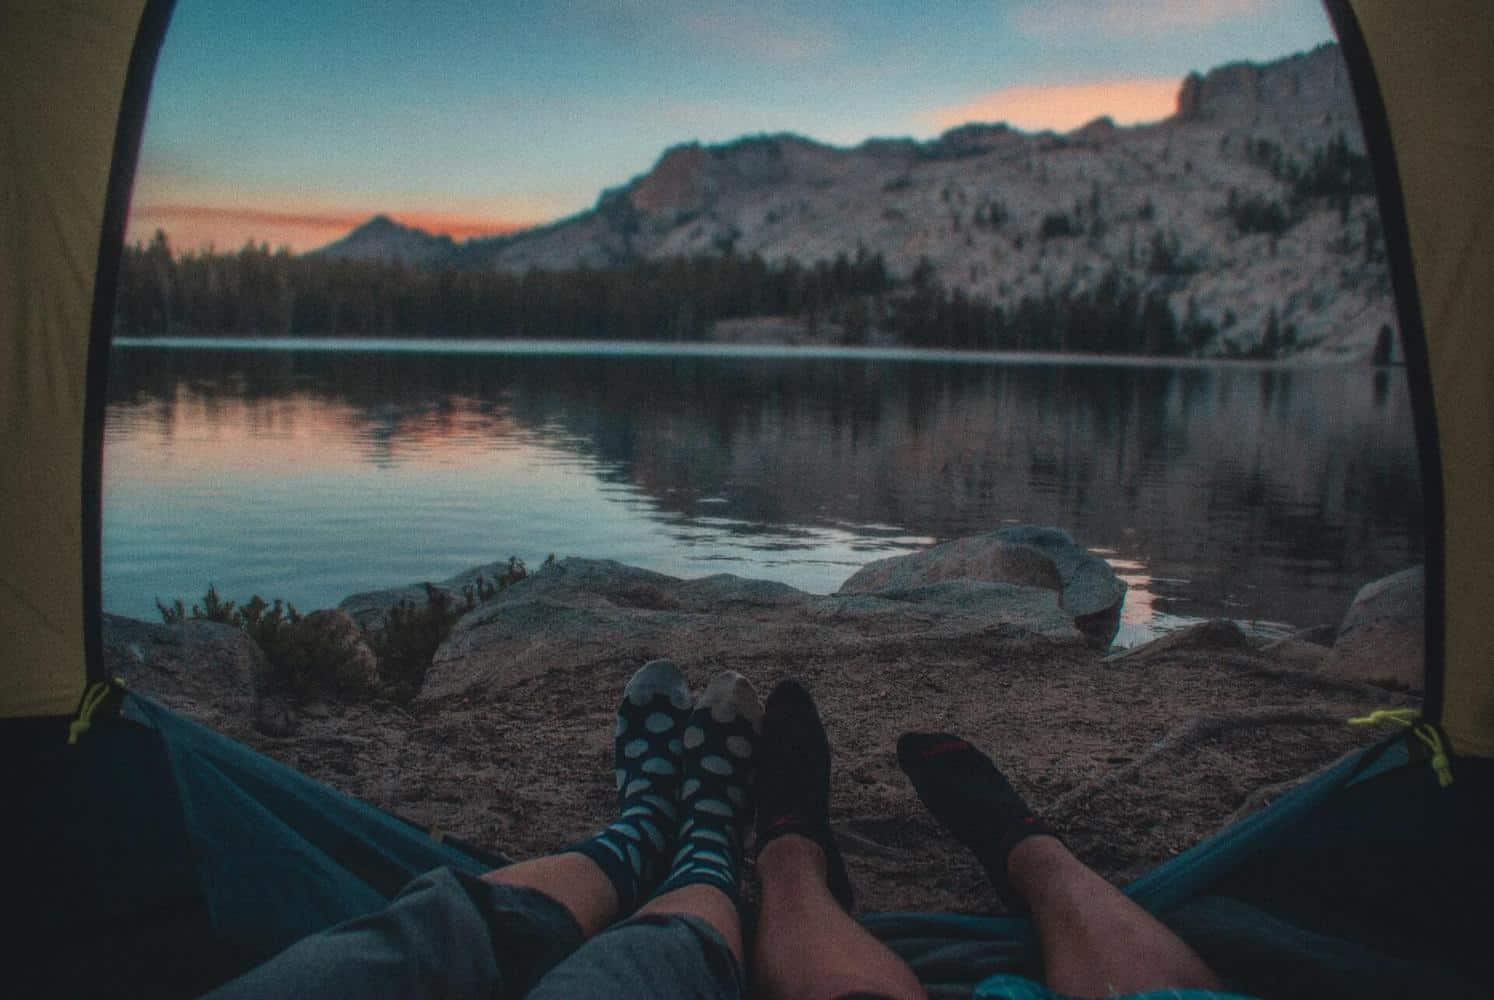 Two people's feet at a tent door with a lake in the background.